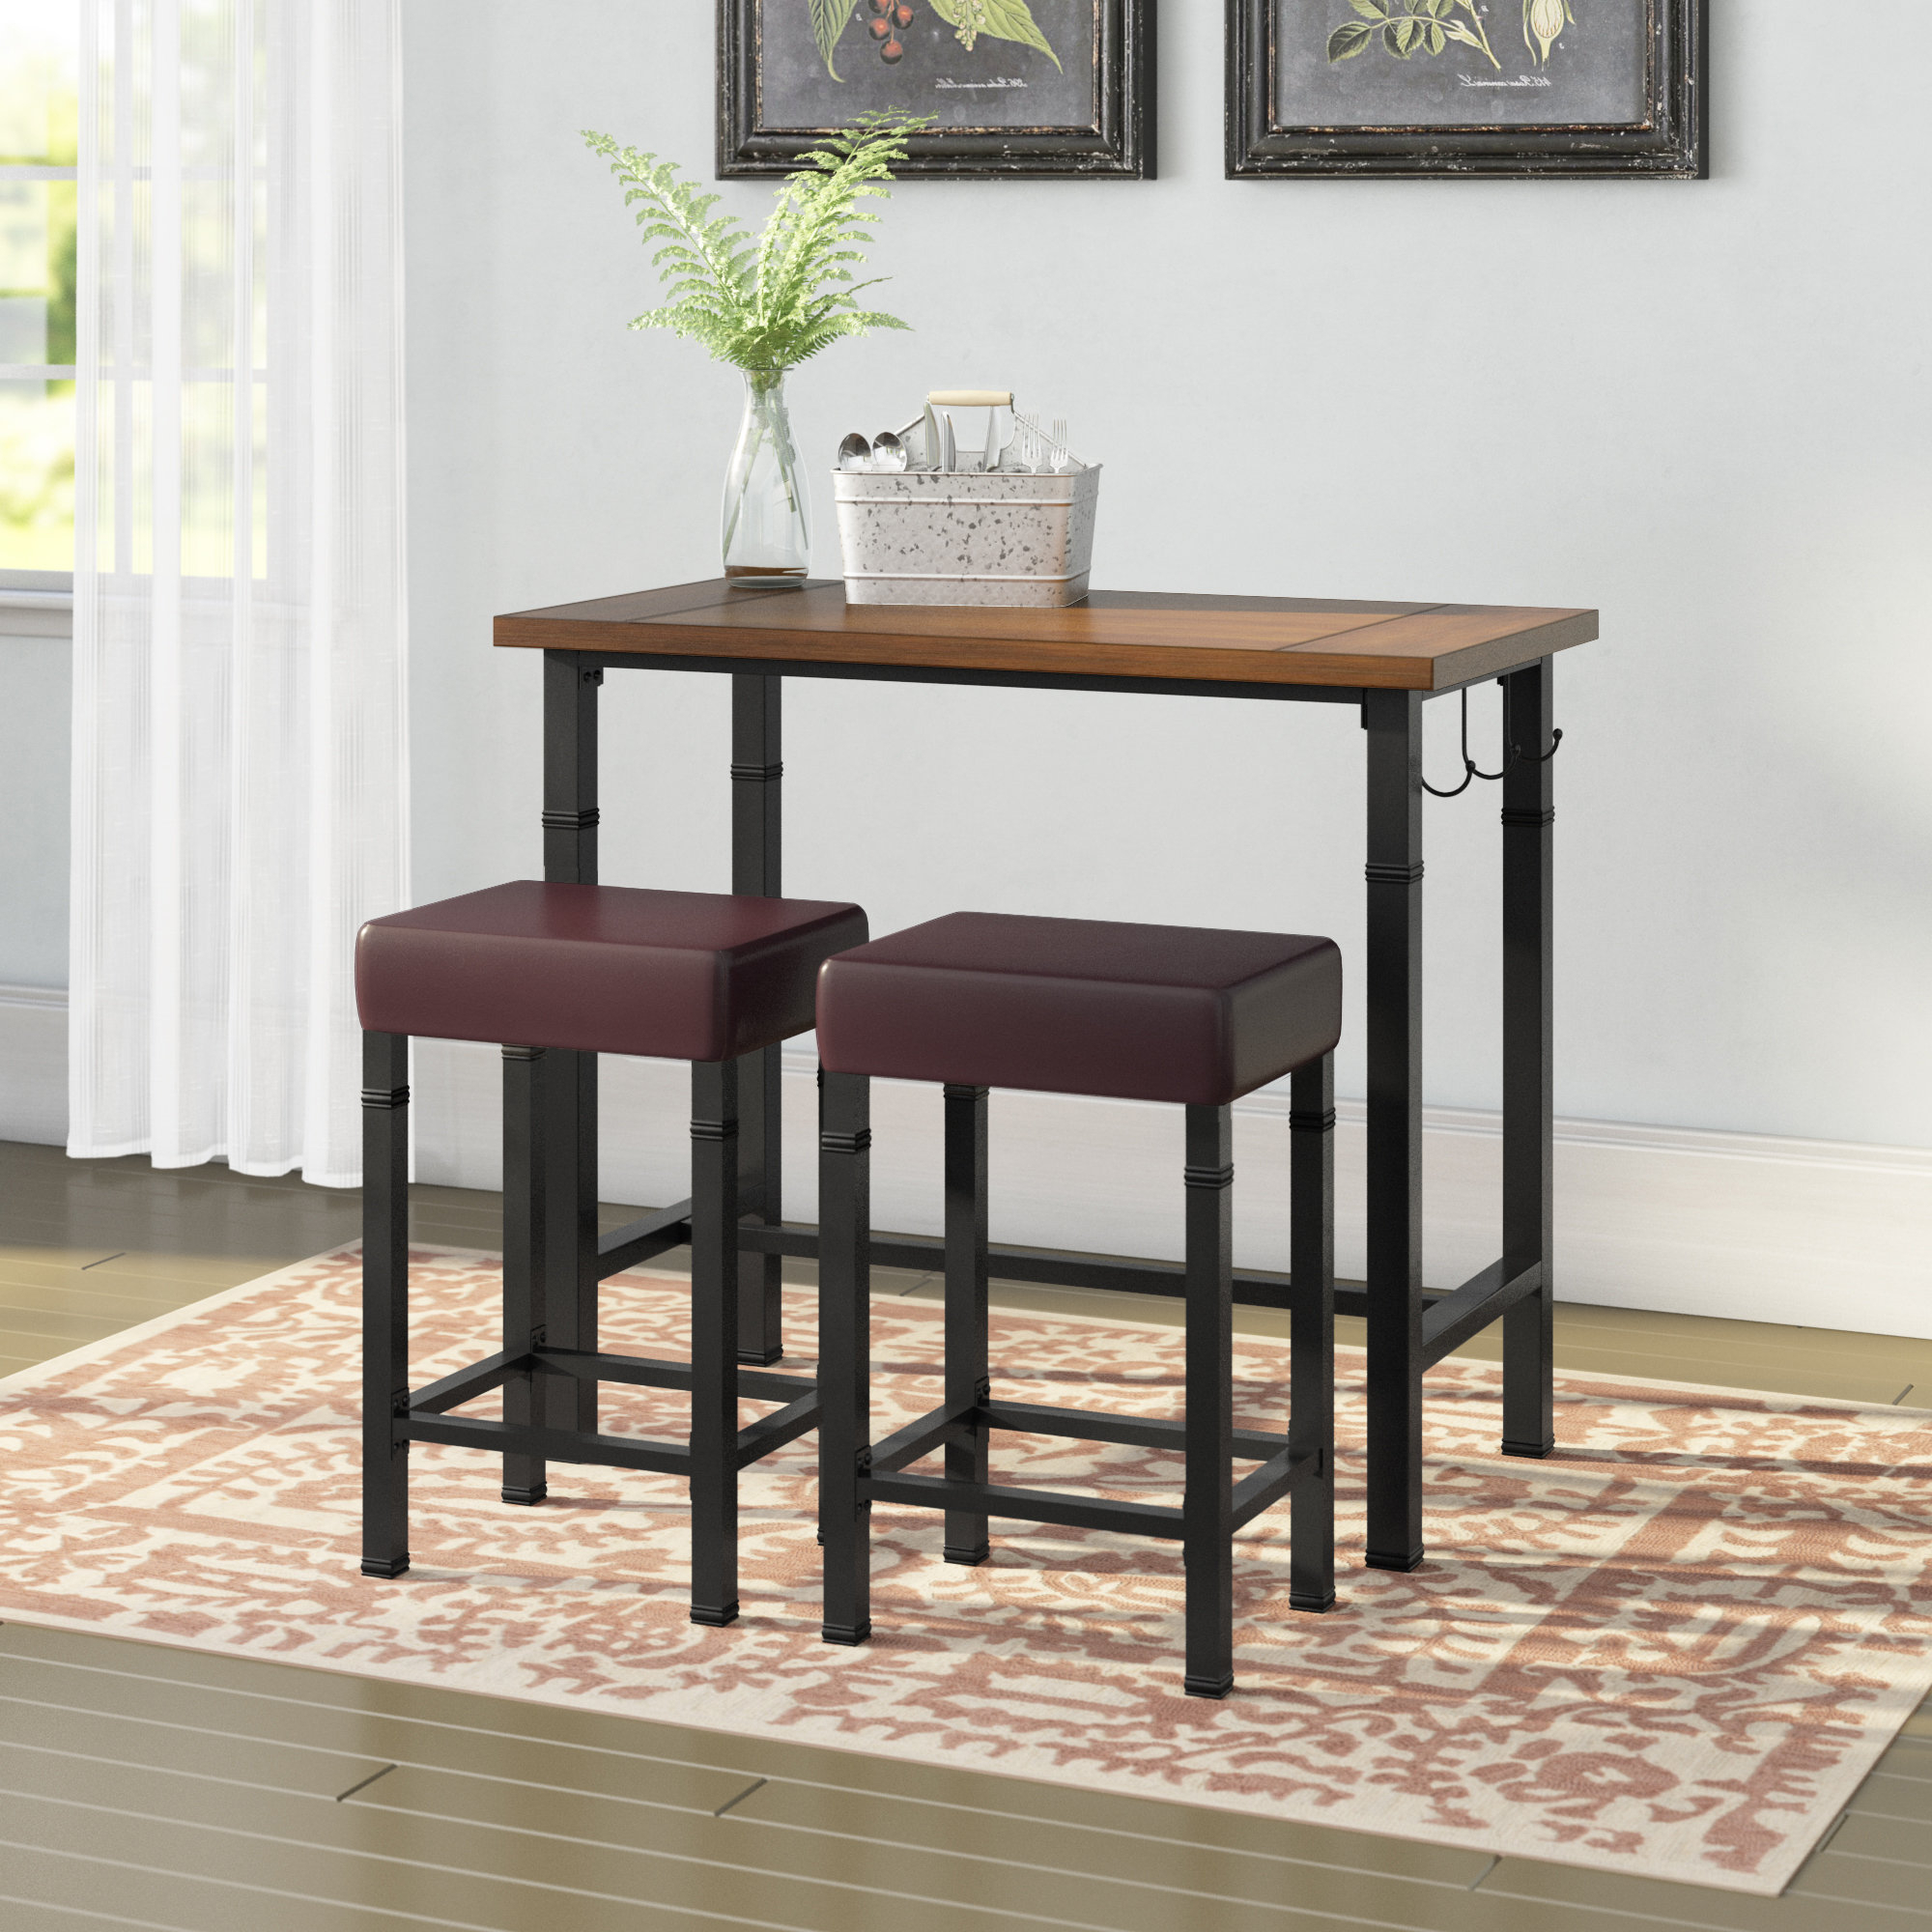 Popular Penelope 3 Piece Counter Height Wood Dining Sets Throughout Laurel Foundry Modern Farmhouse Sevigny 3 Piece Pub Table Set (View 6 of 25)